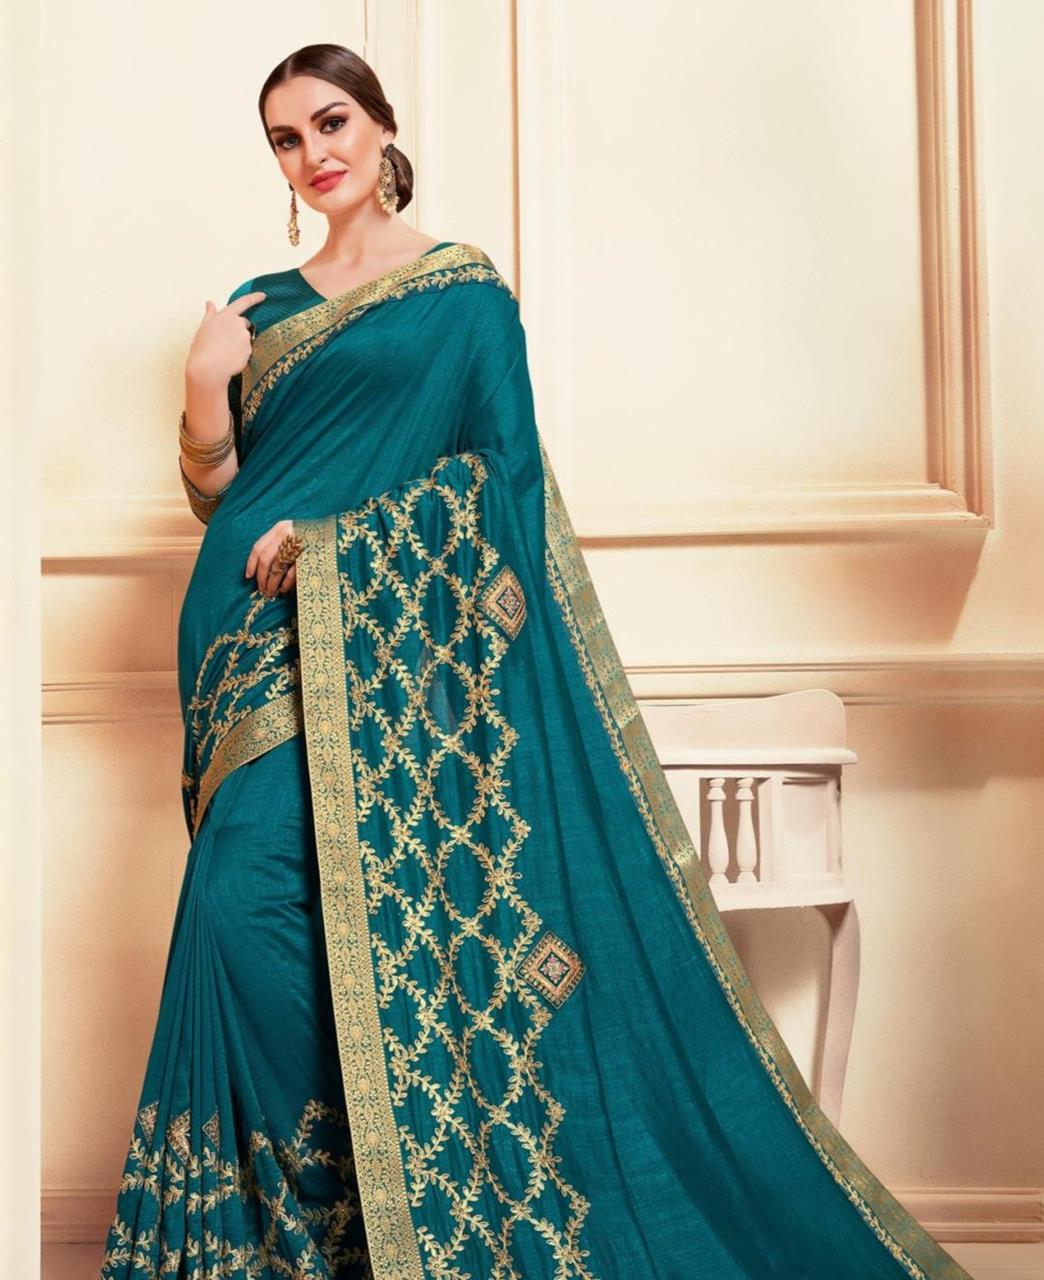 Embroidered Silk Saree in Teal Blue